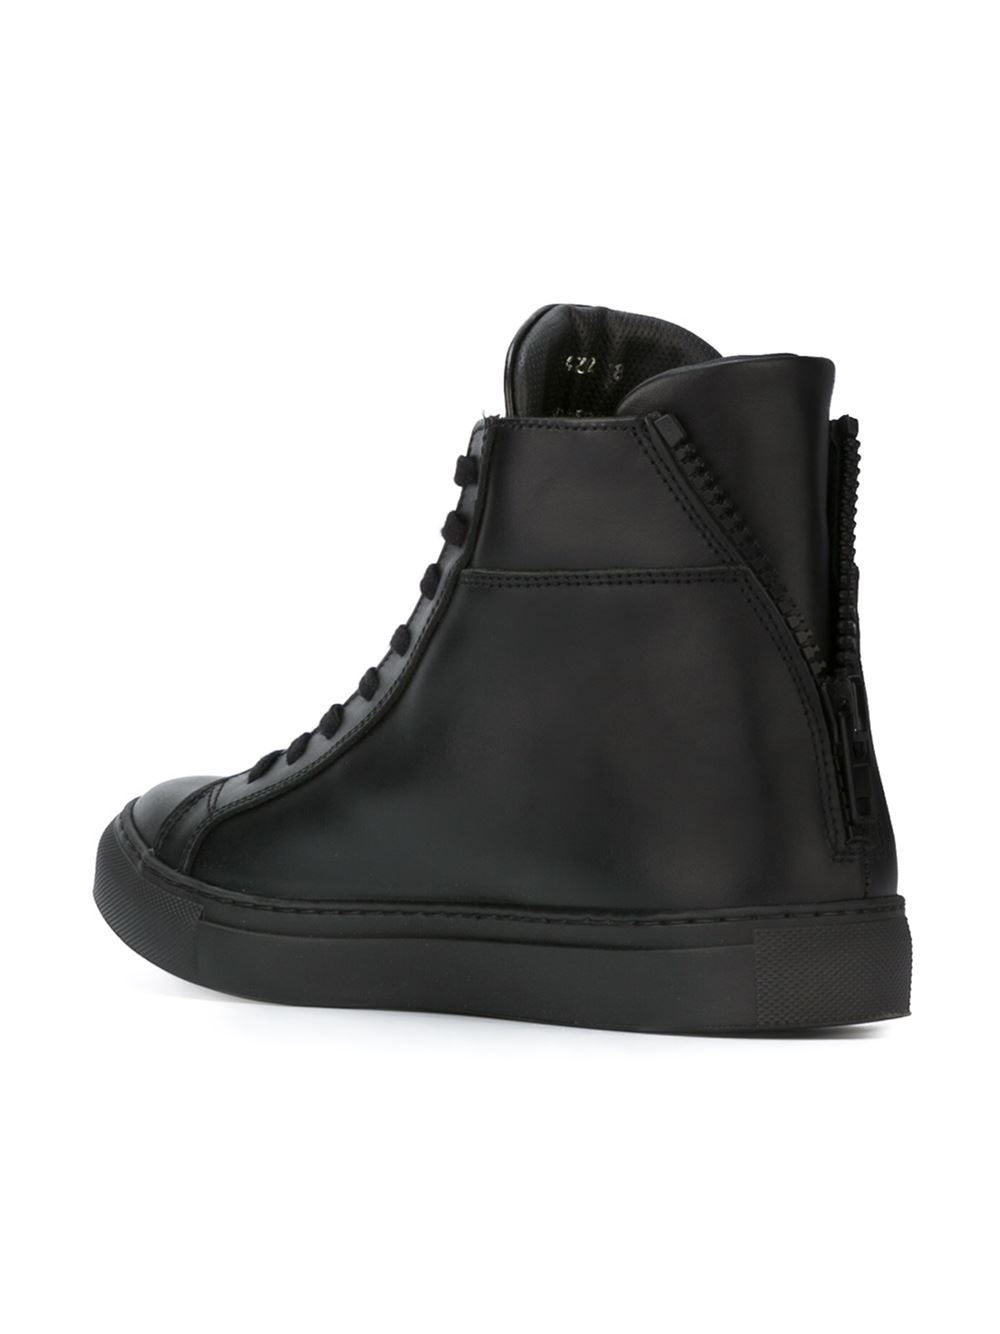 FOOTWEAR - High-tops & sneakers Emporio Armani QUHCWhdmL